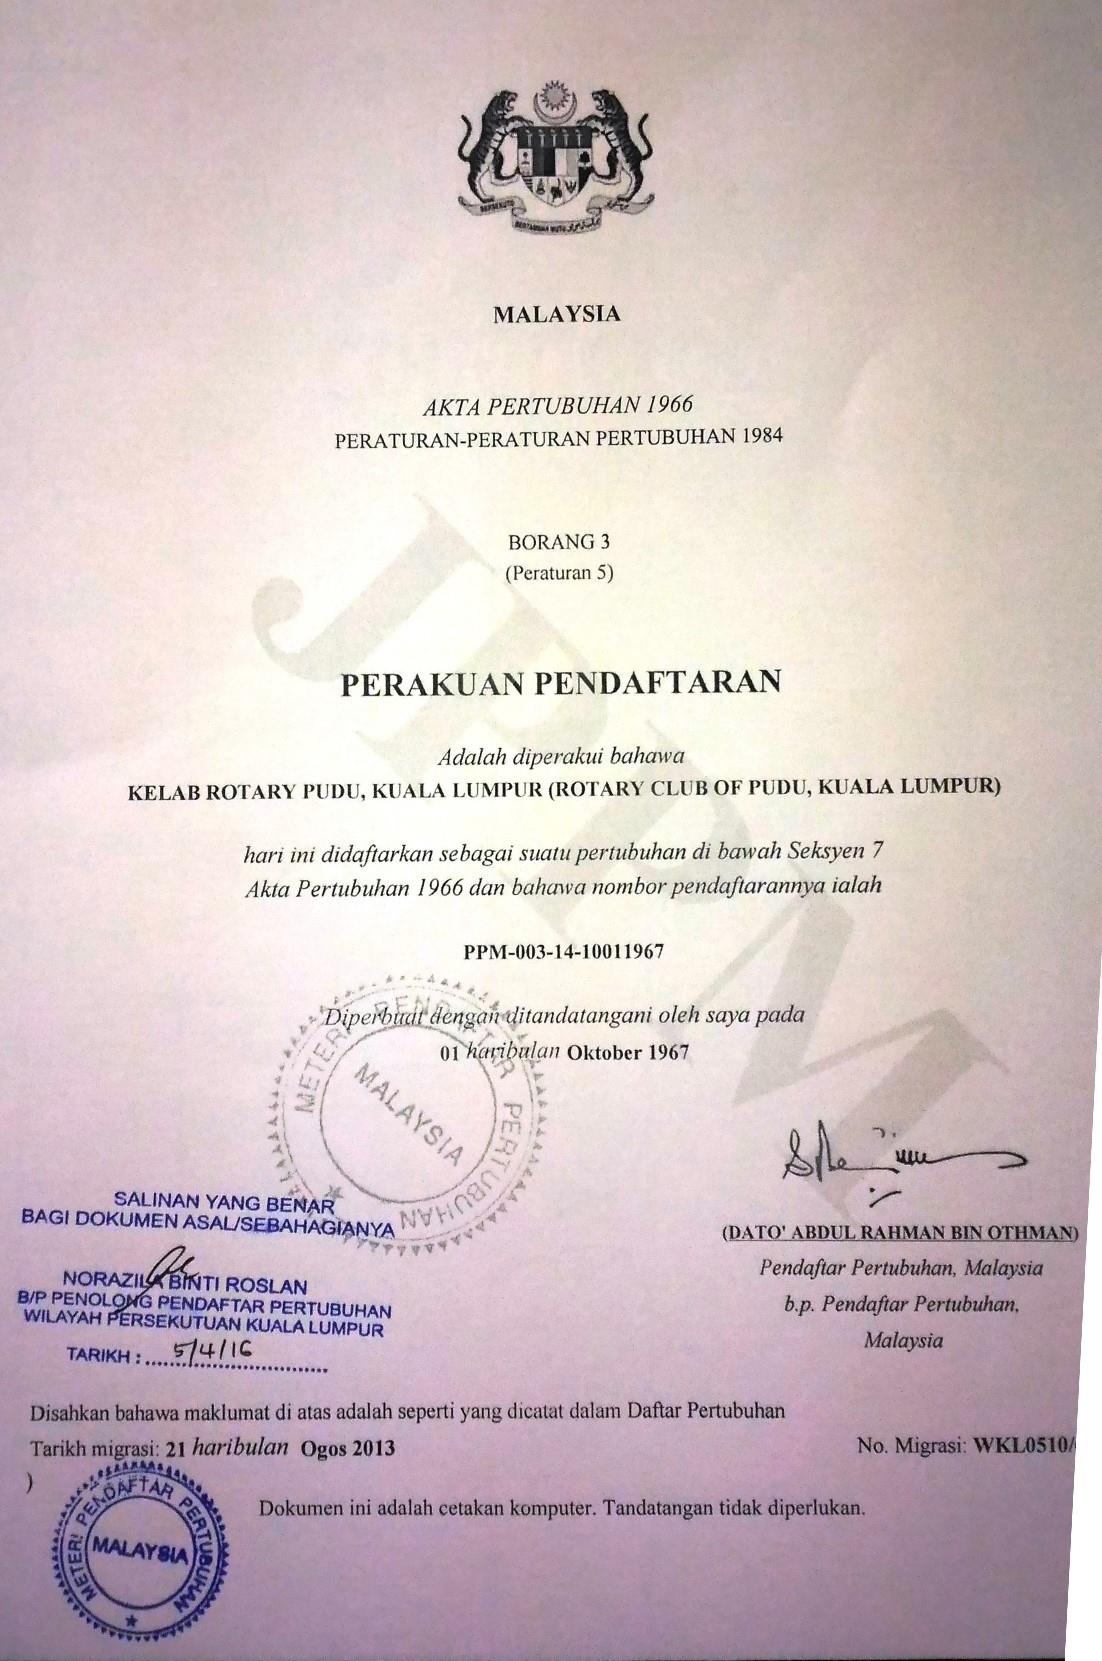 New ROS Registration Certificate | Rotary Club of Pudu